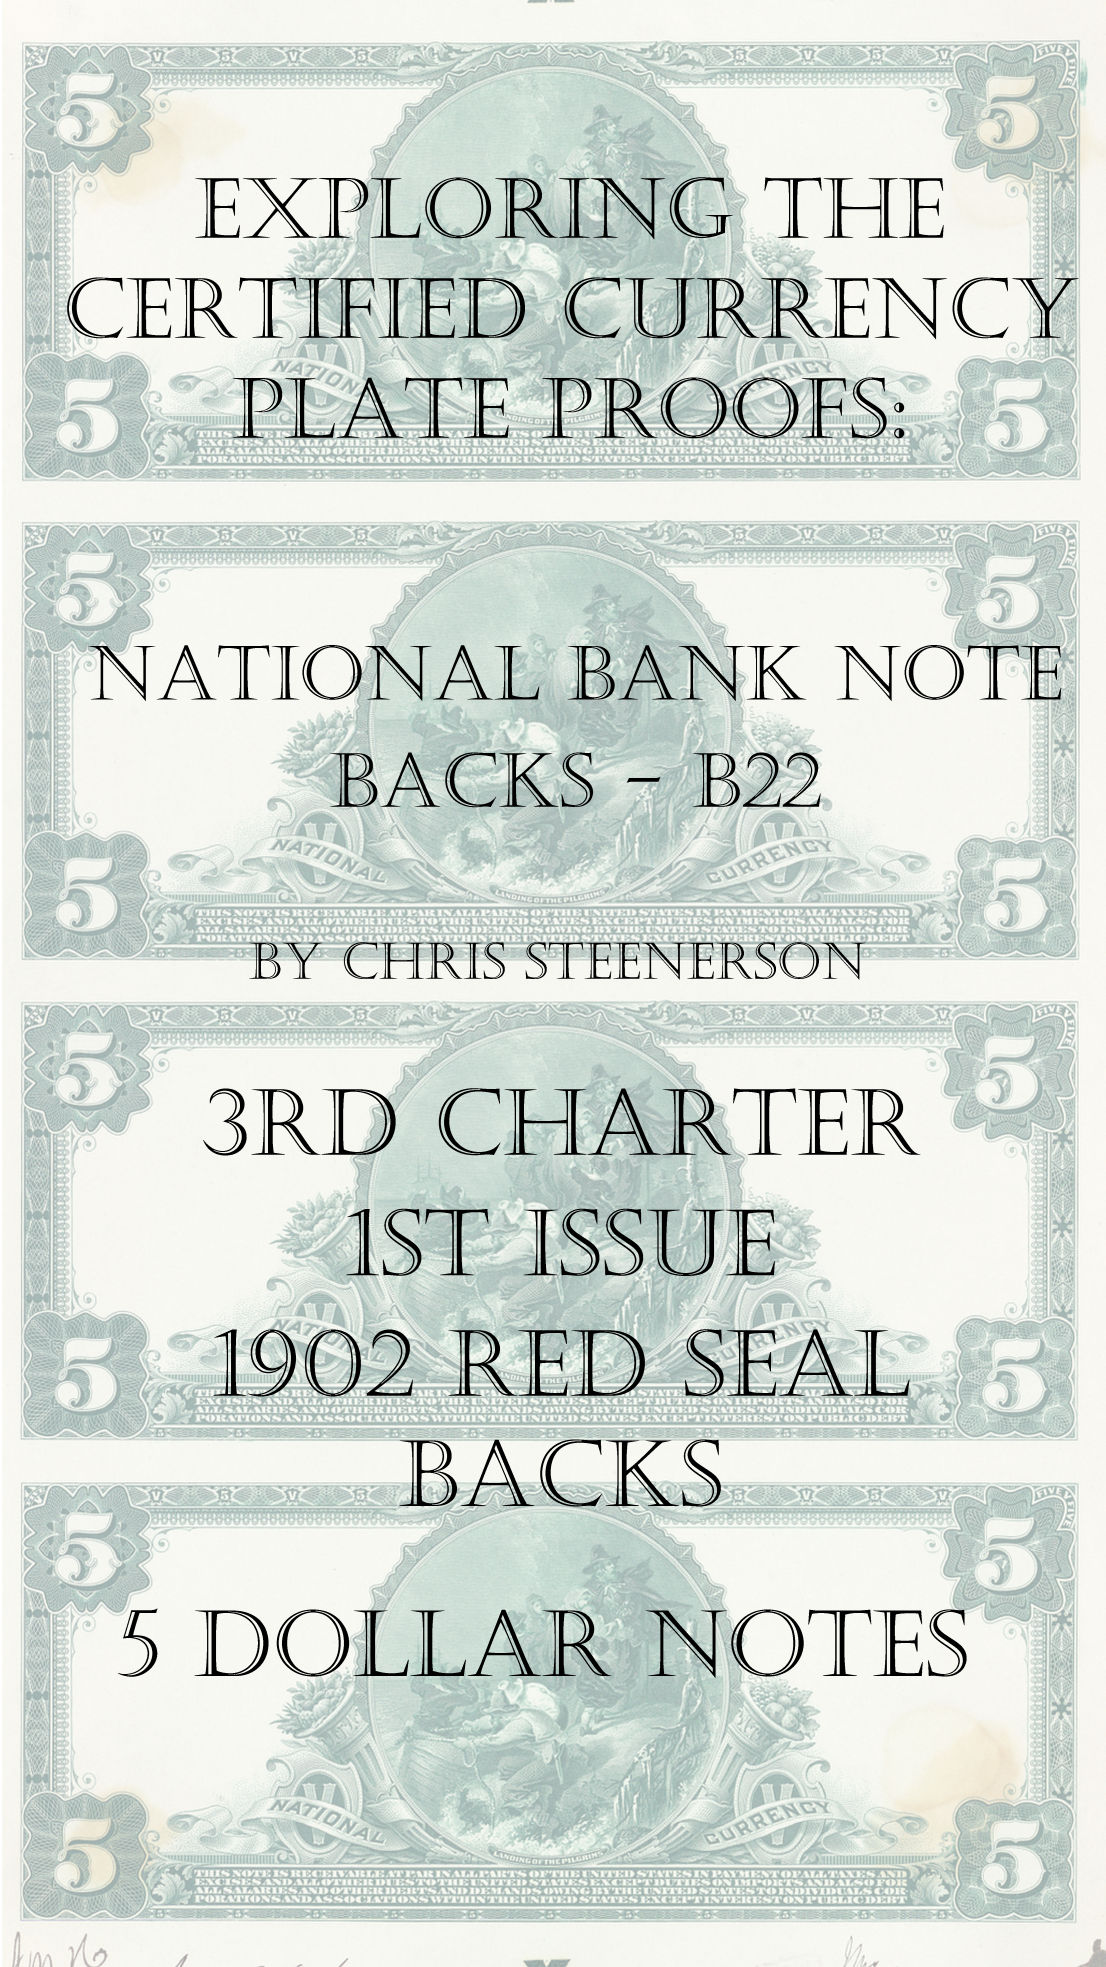 Backs 3rd Charter 1st Issue Currency Proofs